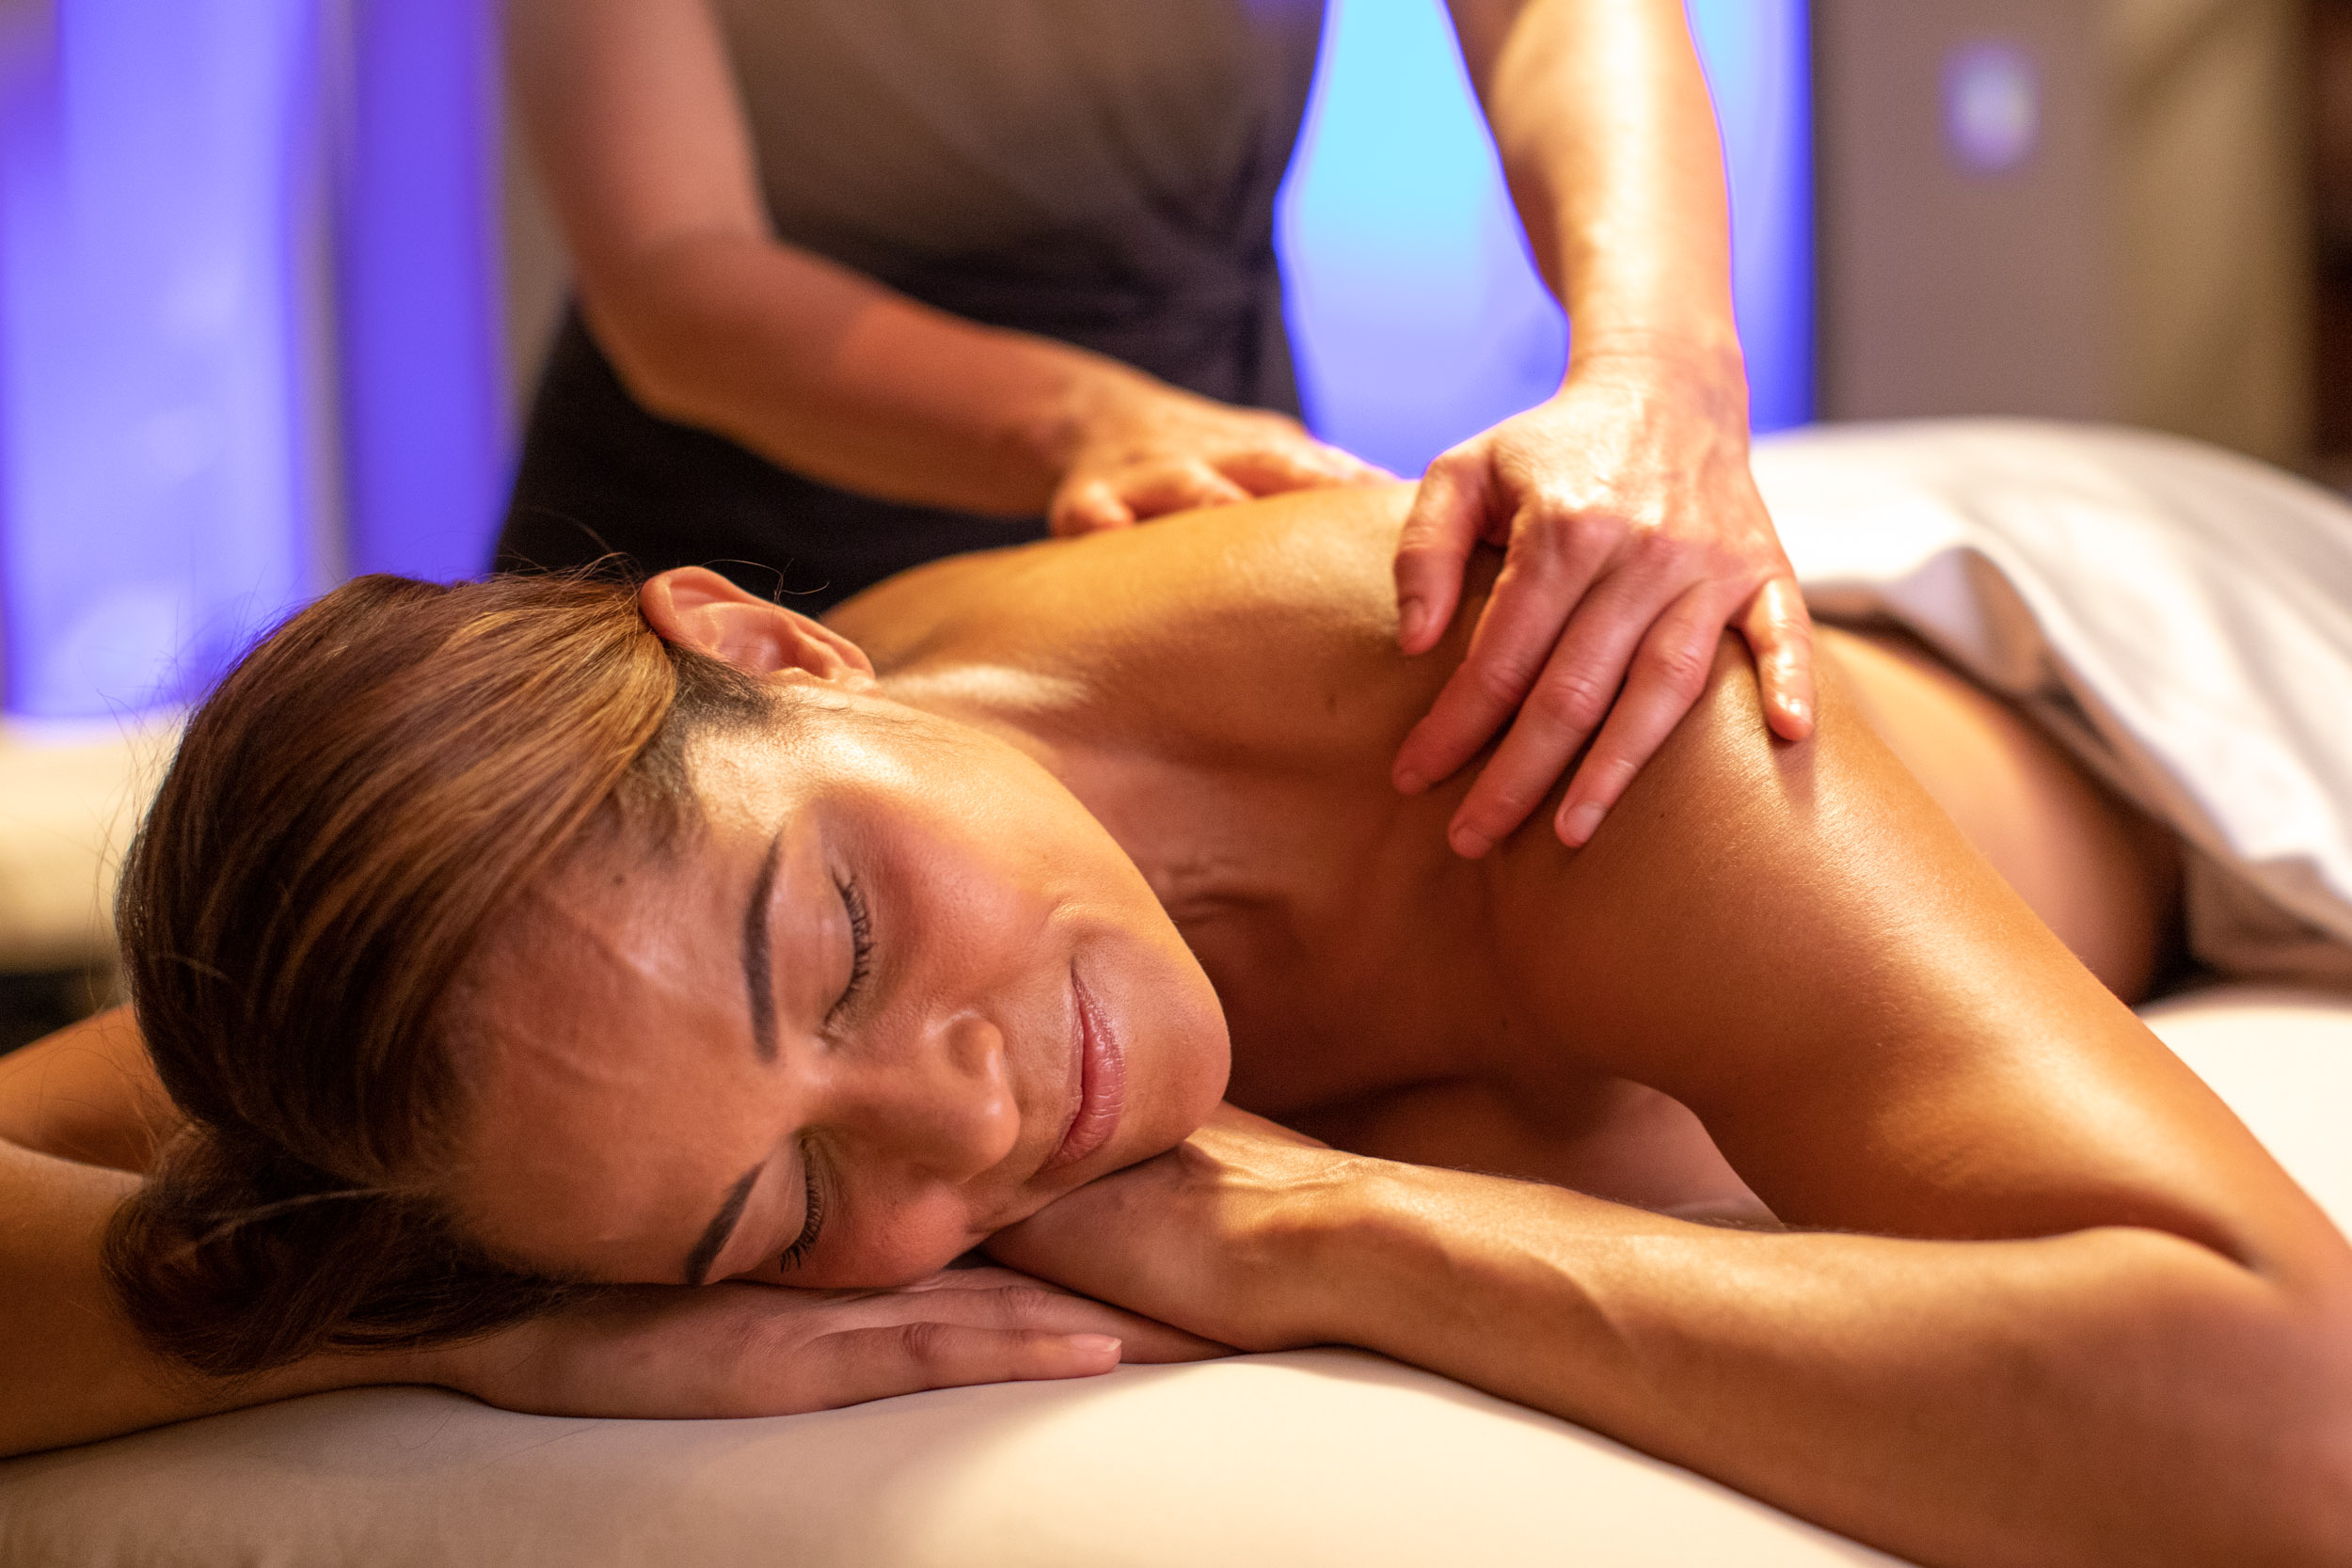 Woman enjoys a massage at a spa